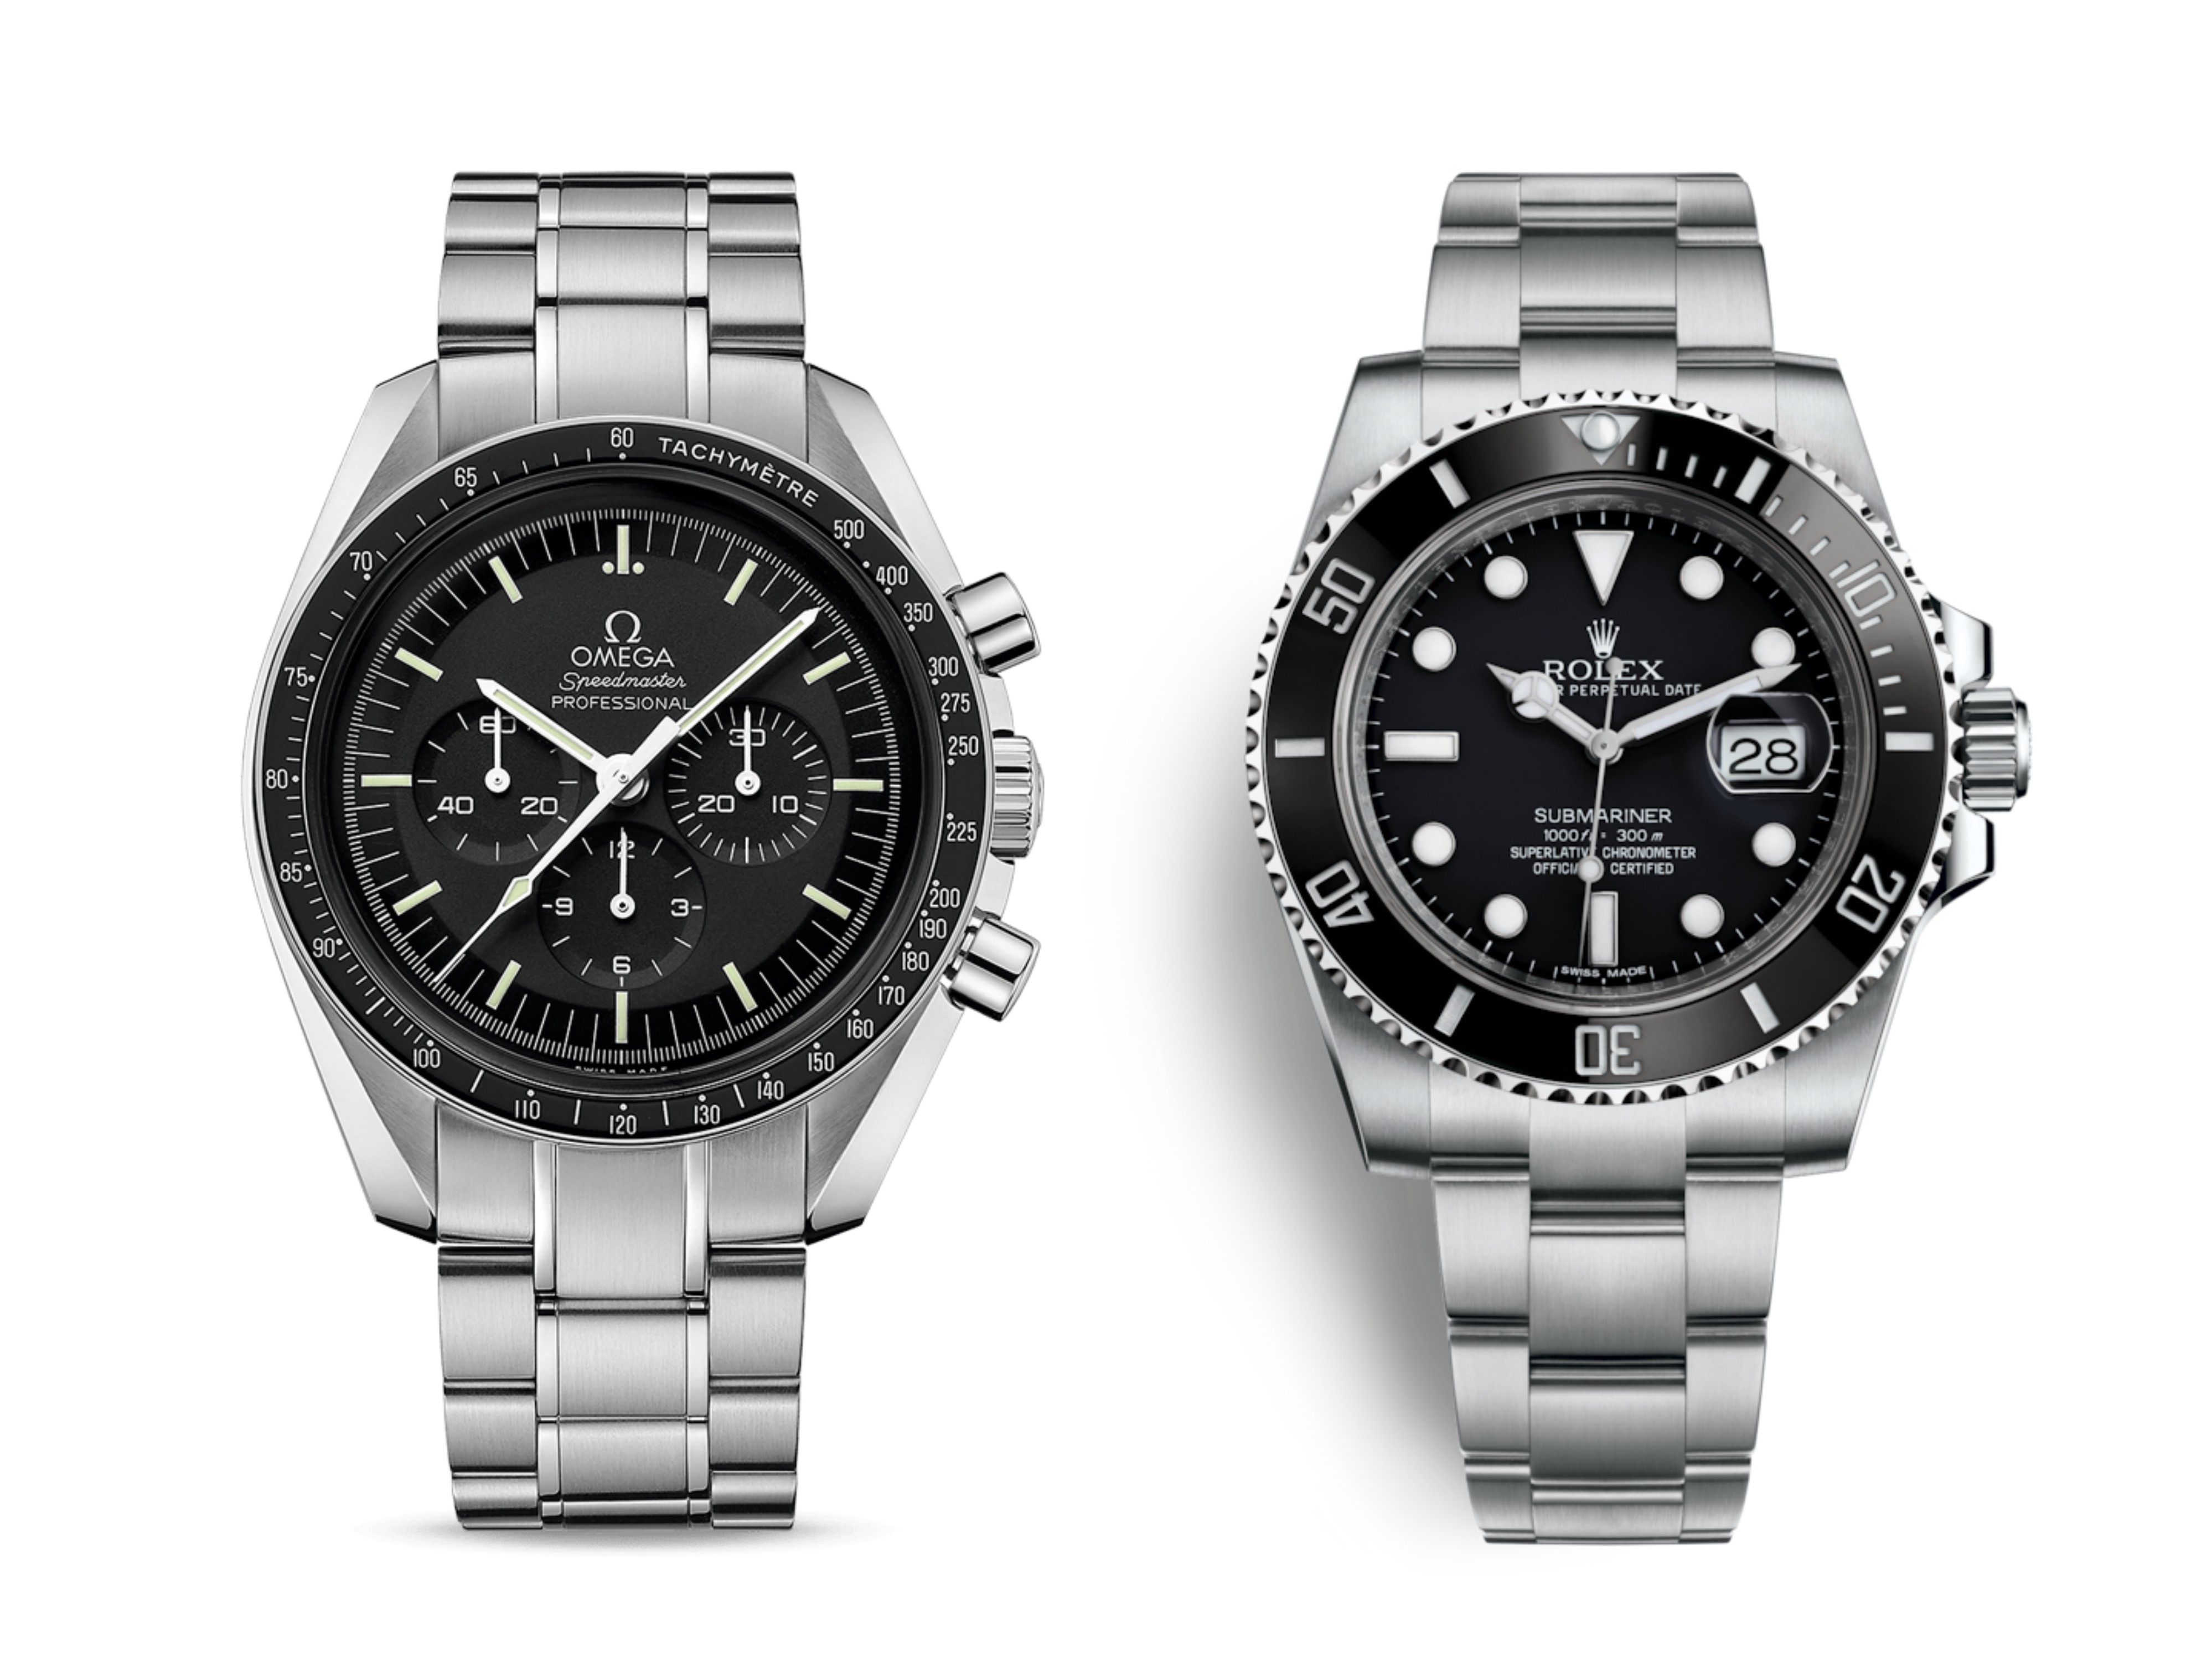 e49ec3df953 Rolex Submariner vs Omega Speedmaster Moonwatch: clash of the titans ! -  Perpetual Passion